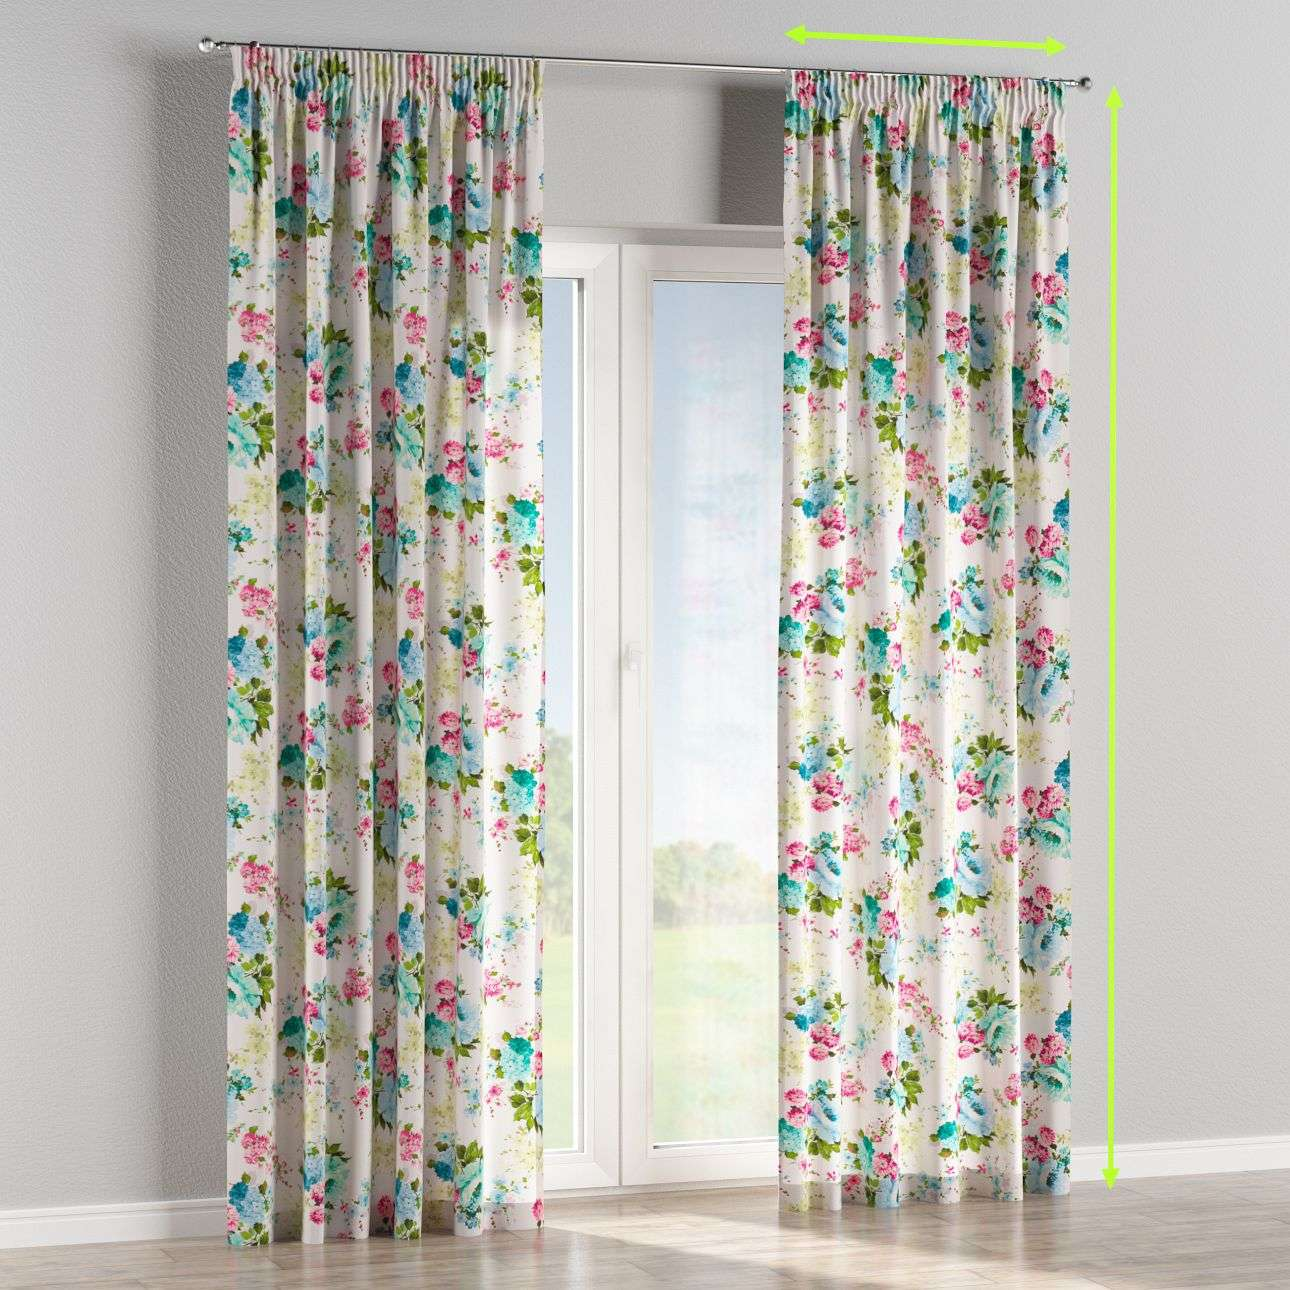 Pencil pleat curtain in collection Monet, fabric: 140-02